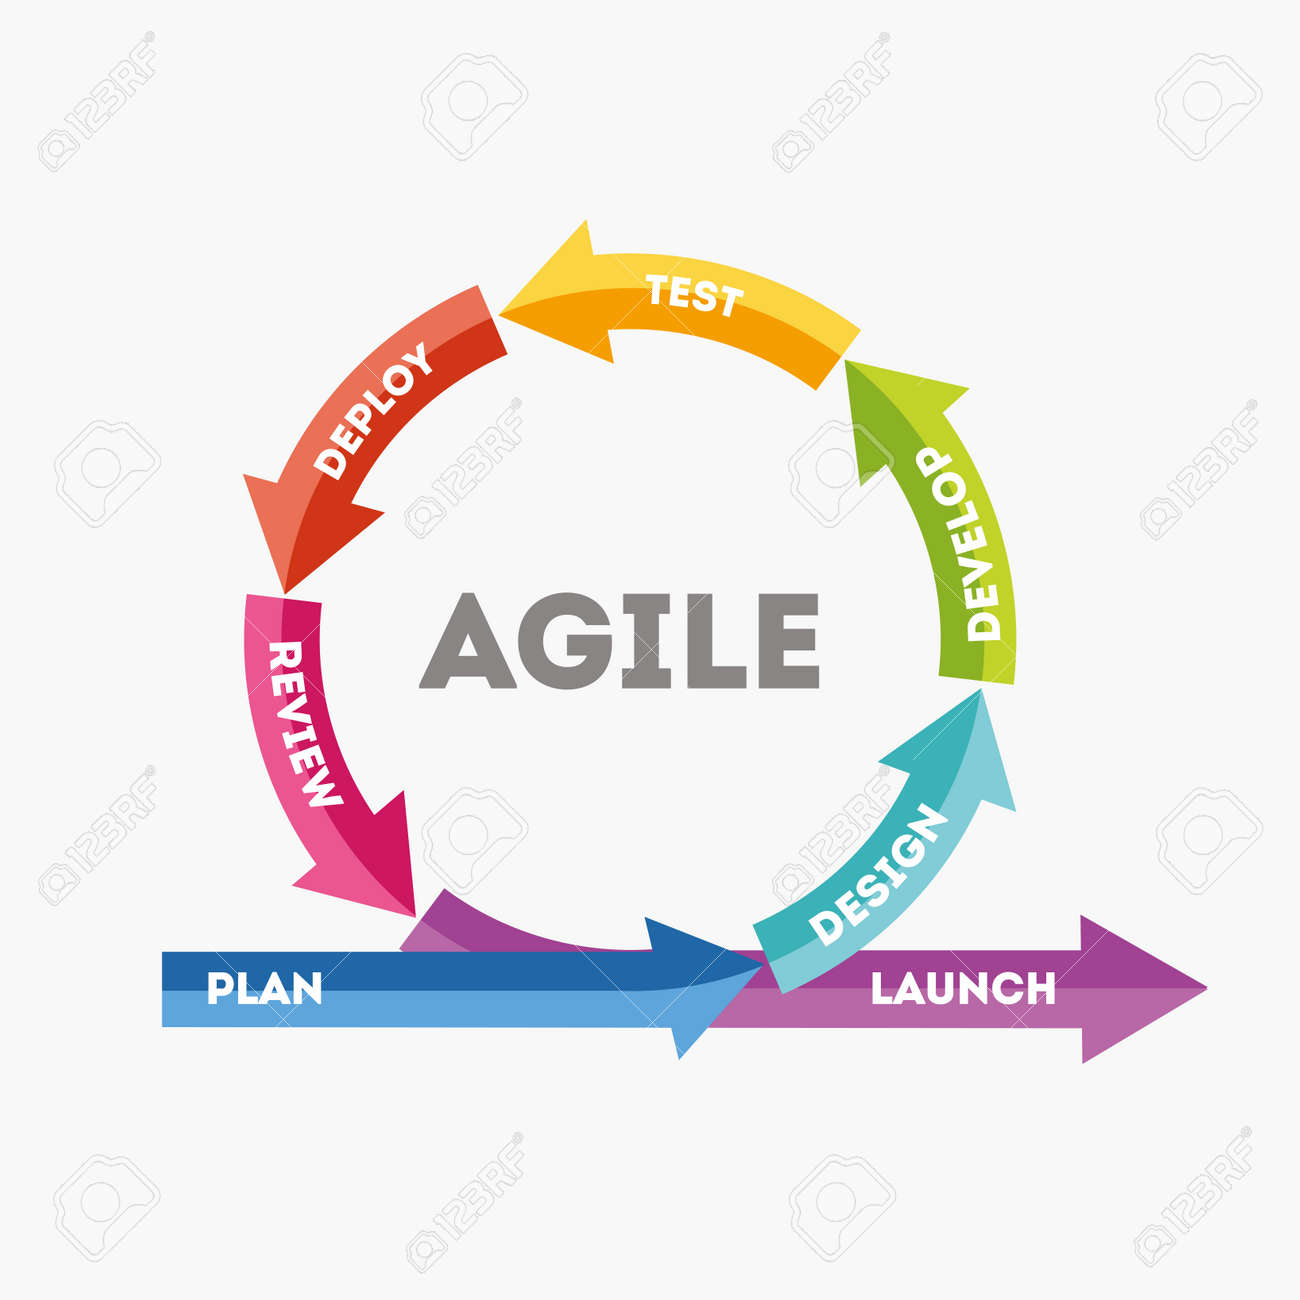 The concept of rapid product development. The concept of the sprint product development. Diagram of life cycle of product development in flat style. Vector illustration Eps10 file. - 95763007